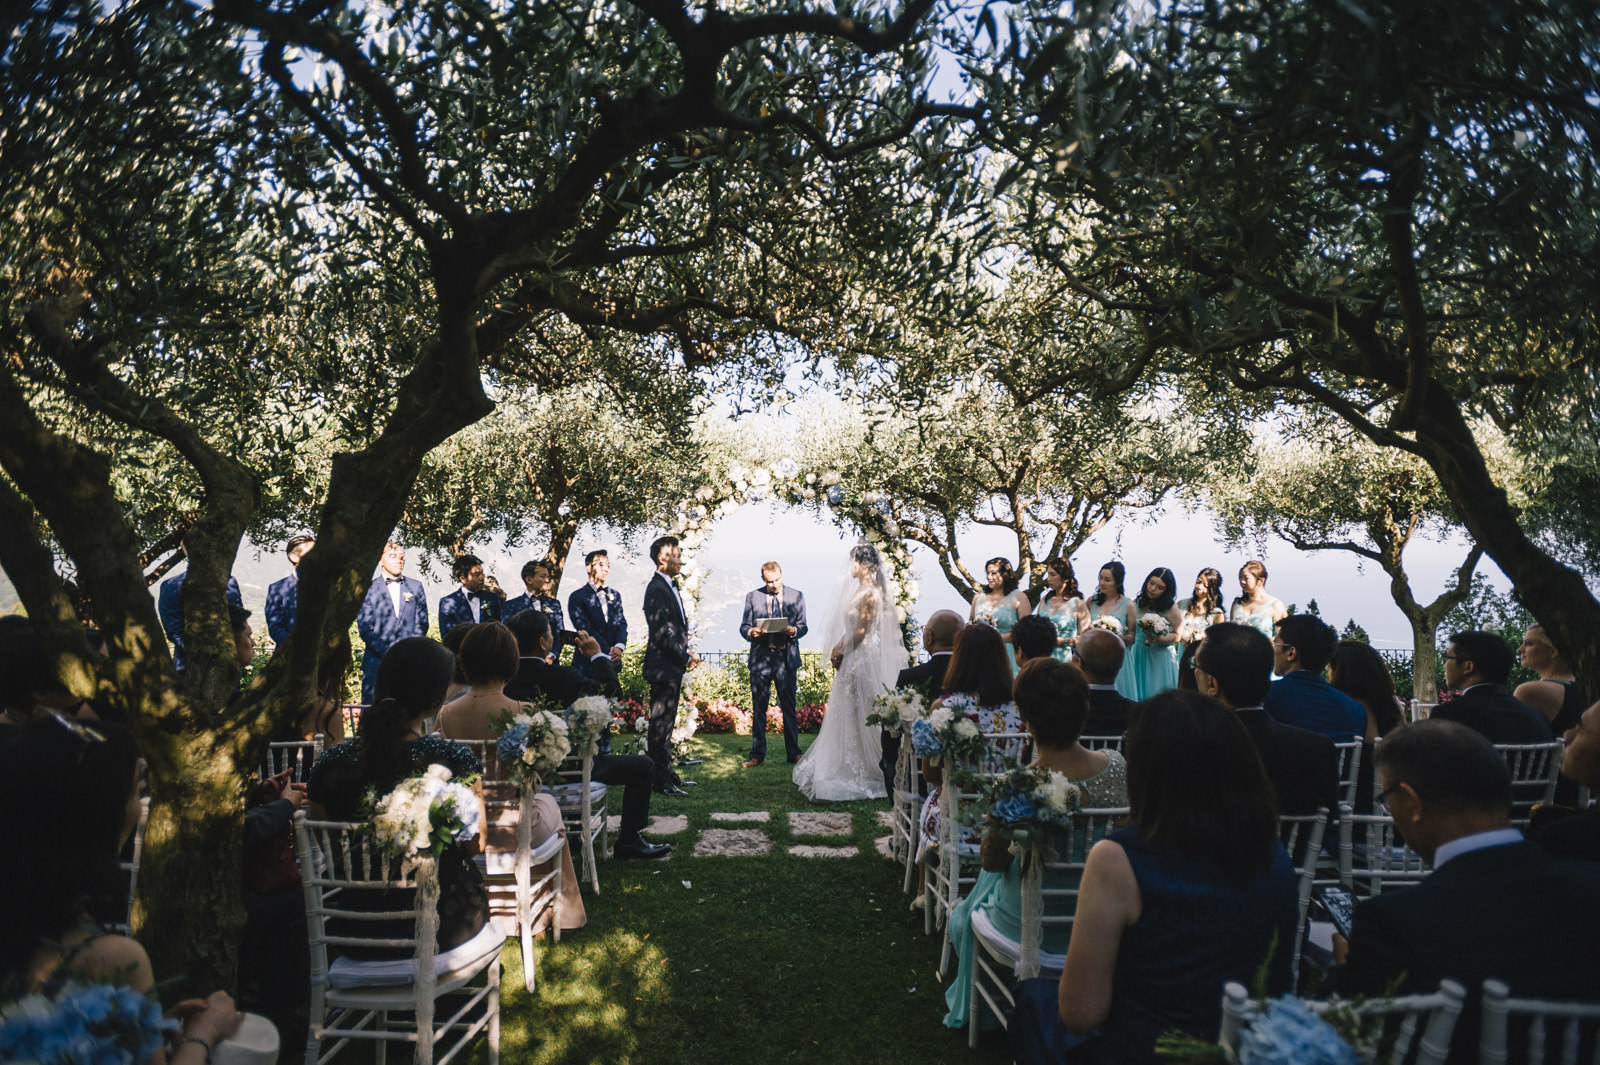 moment from the wedding ceremony at belmont hotel caruso in ravello